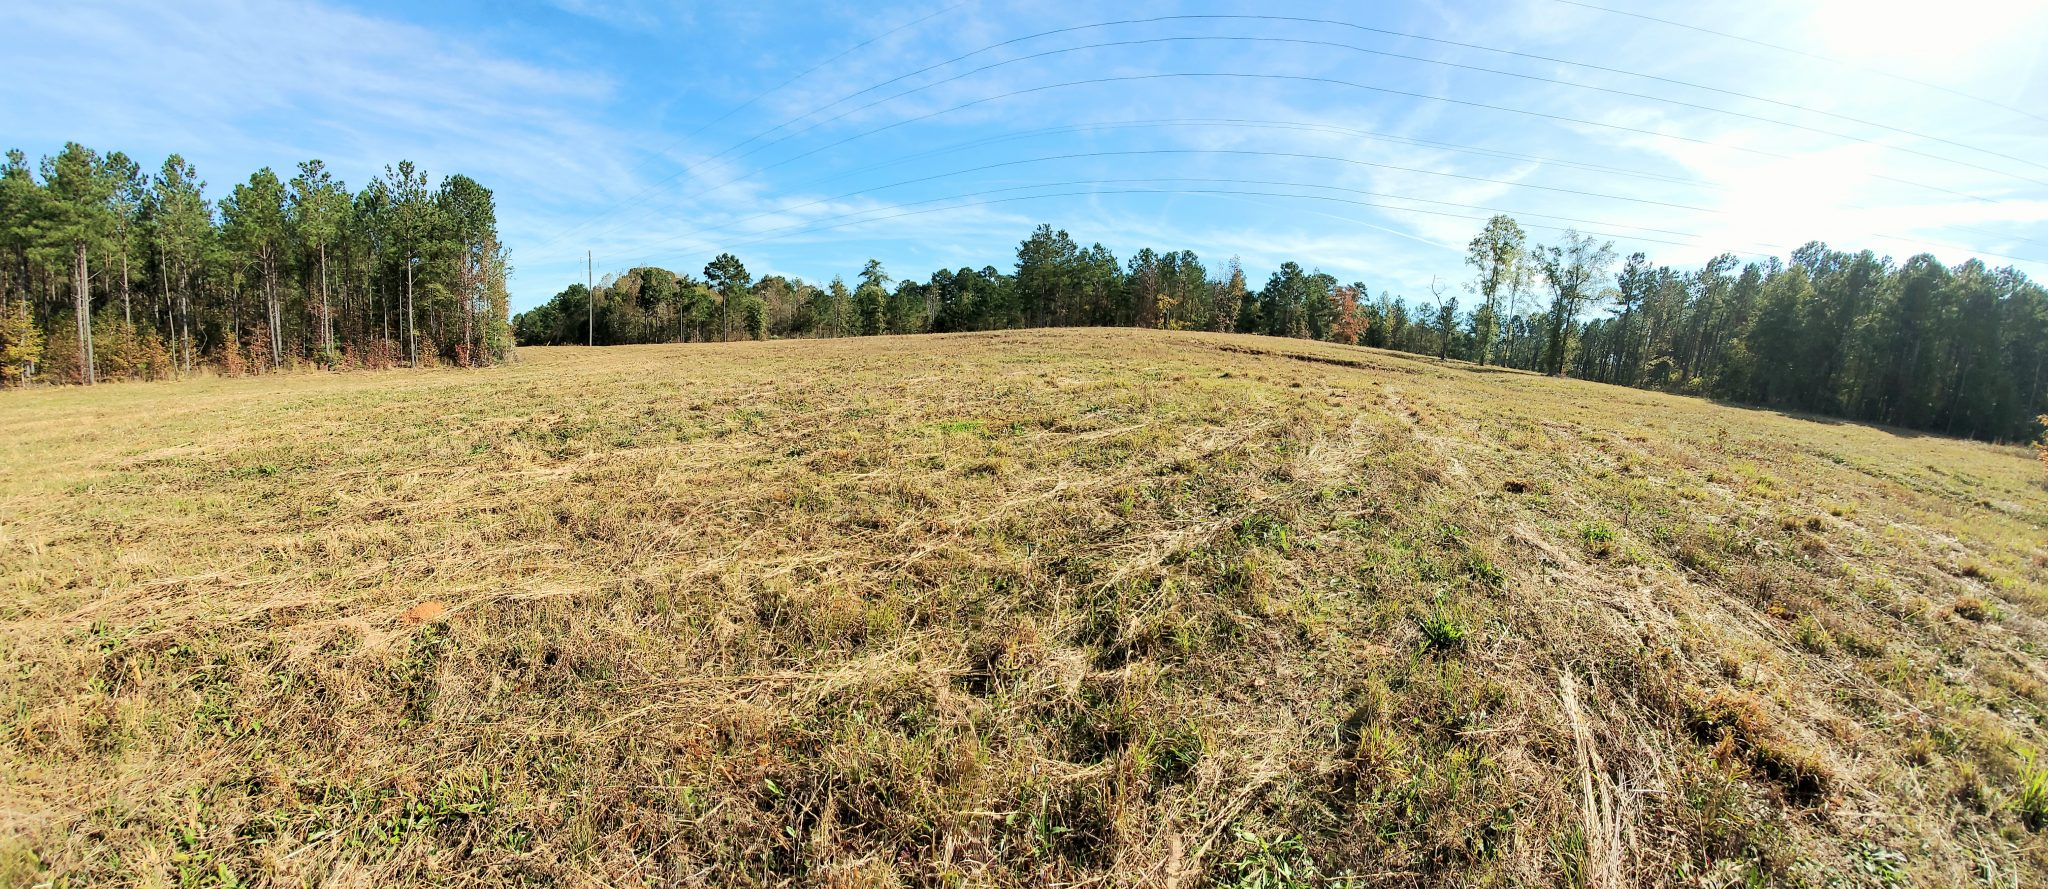 SOLD!! Beautiful 16+/- Acres in Chambers County